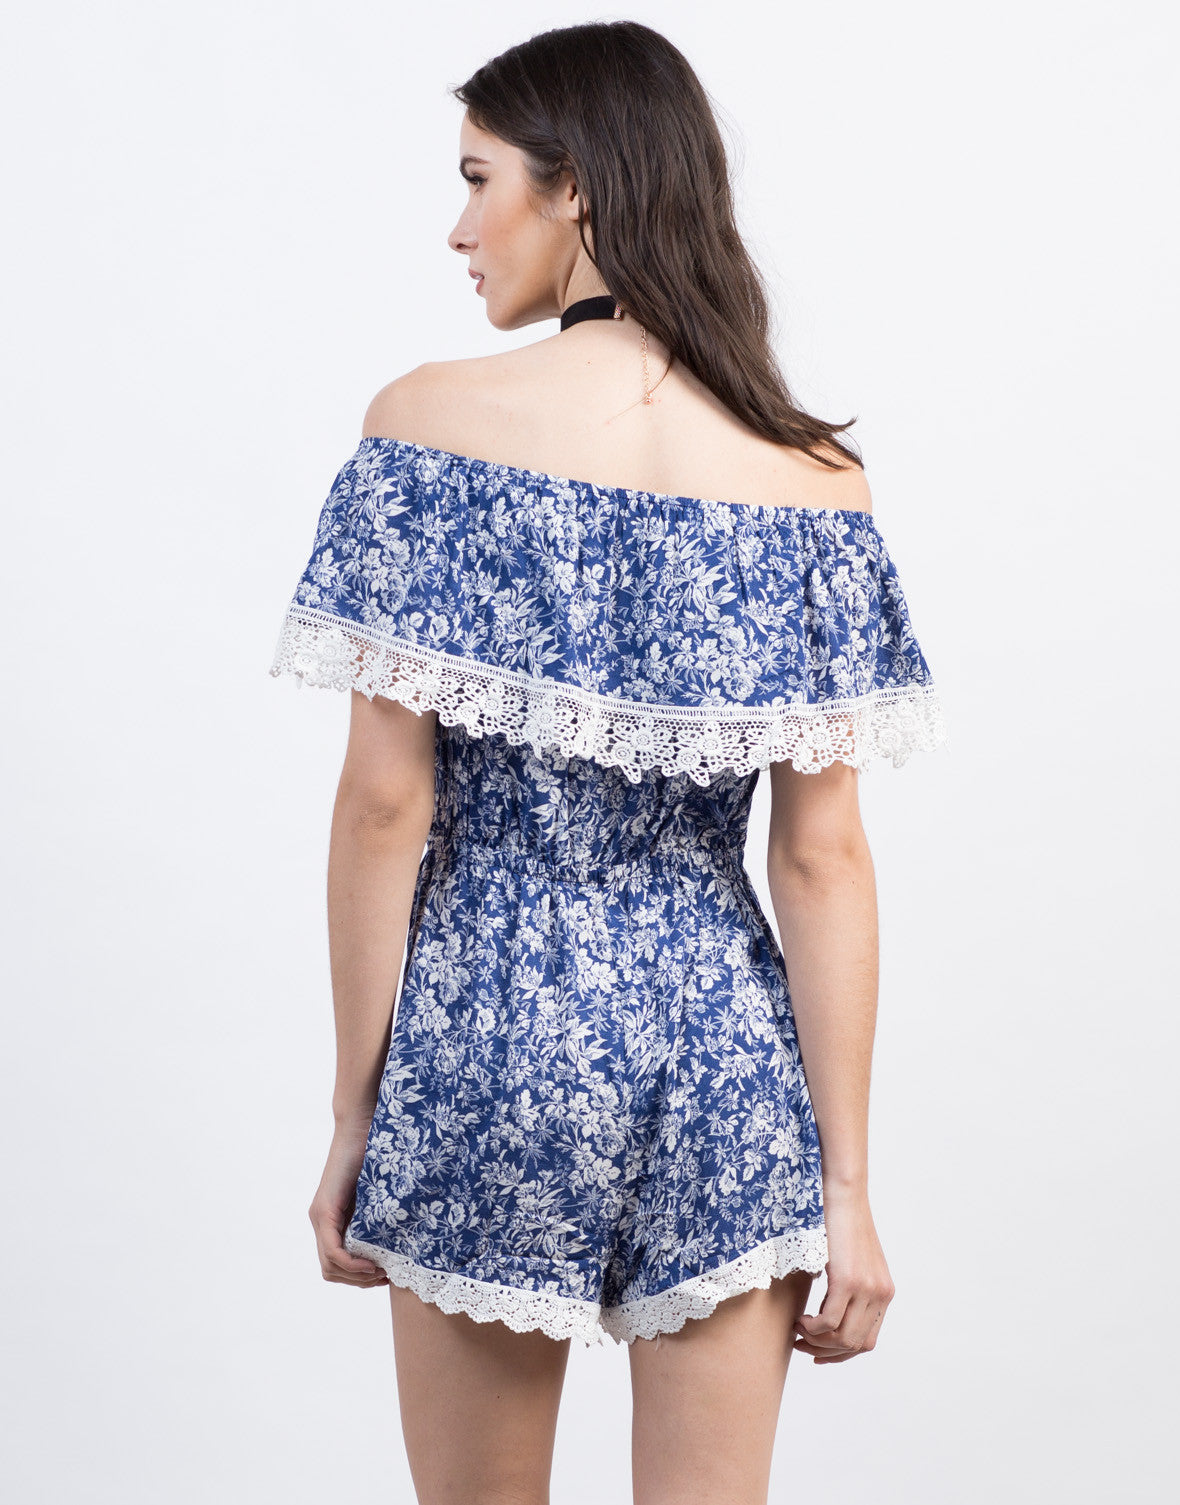 Back View of Floral Crochet Romper